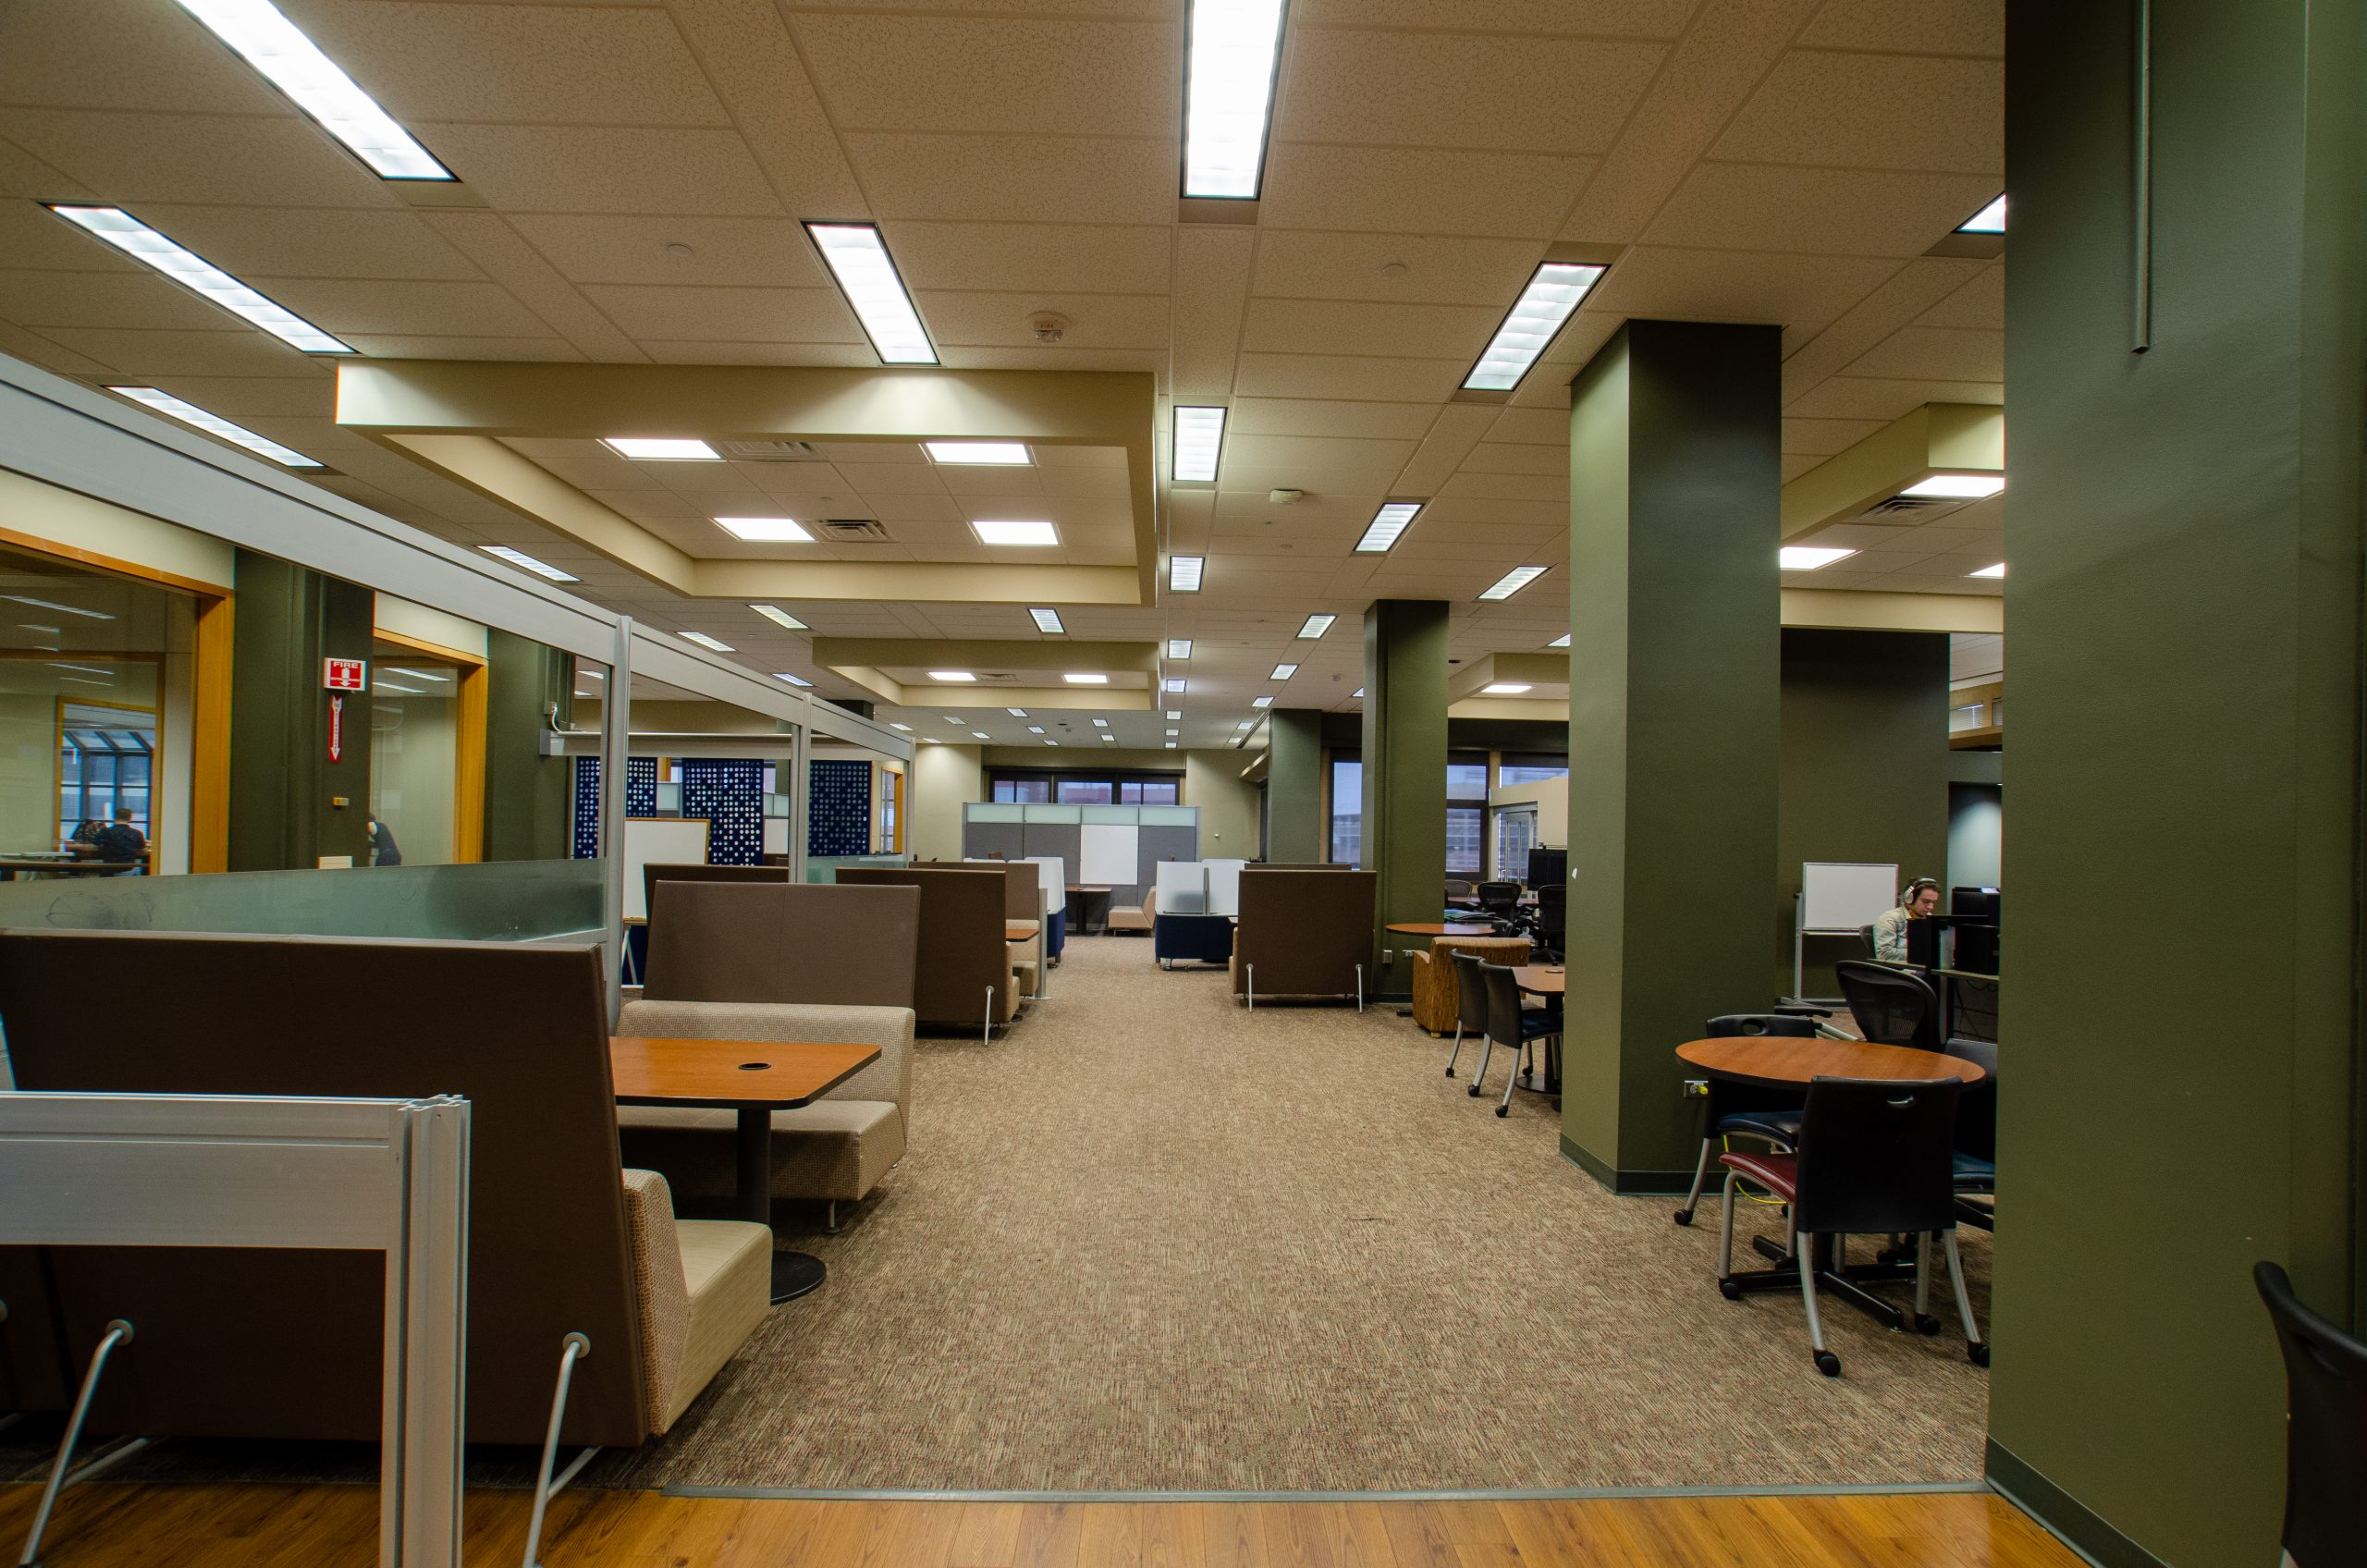 commons south in hodges library at university of tennesee knoxville